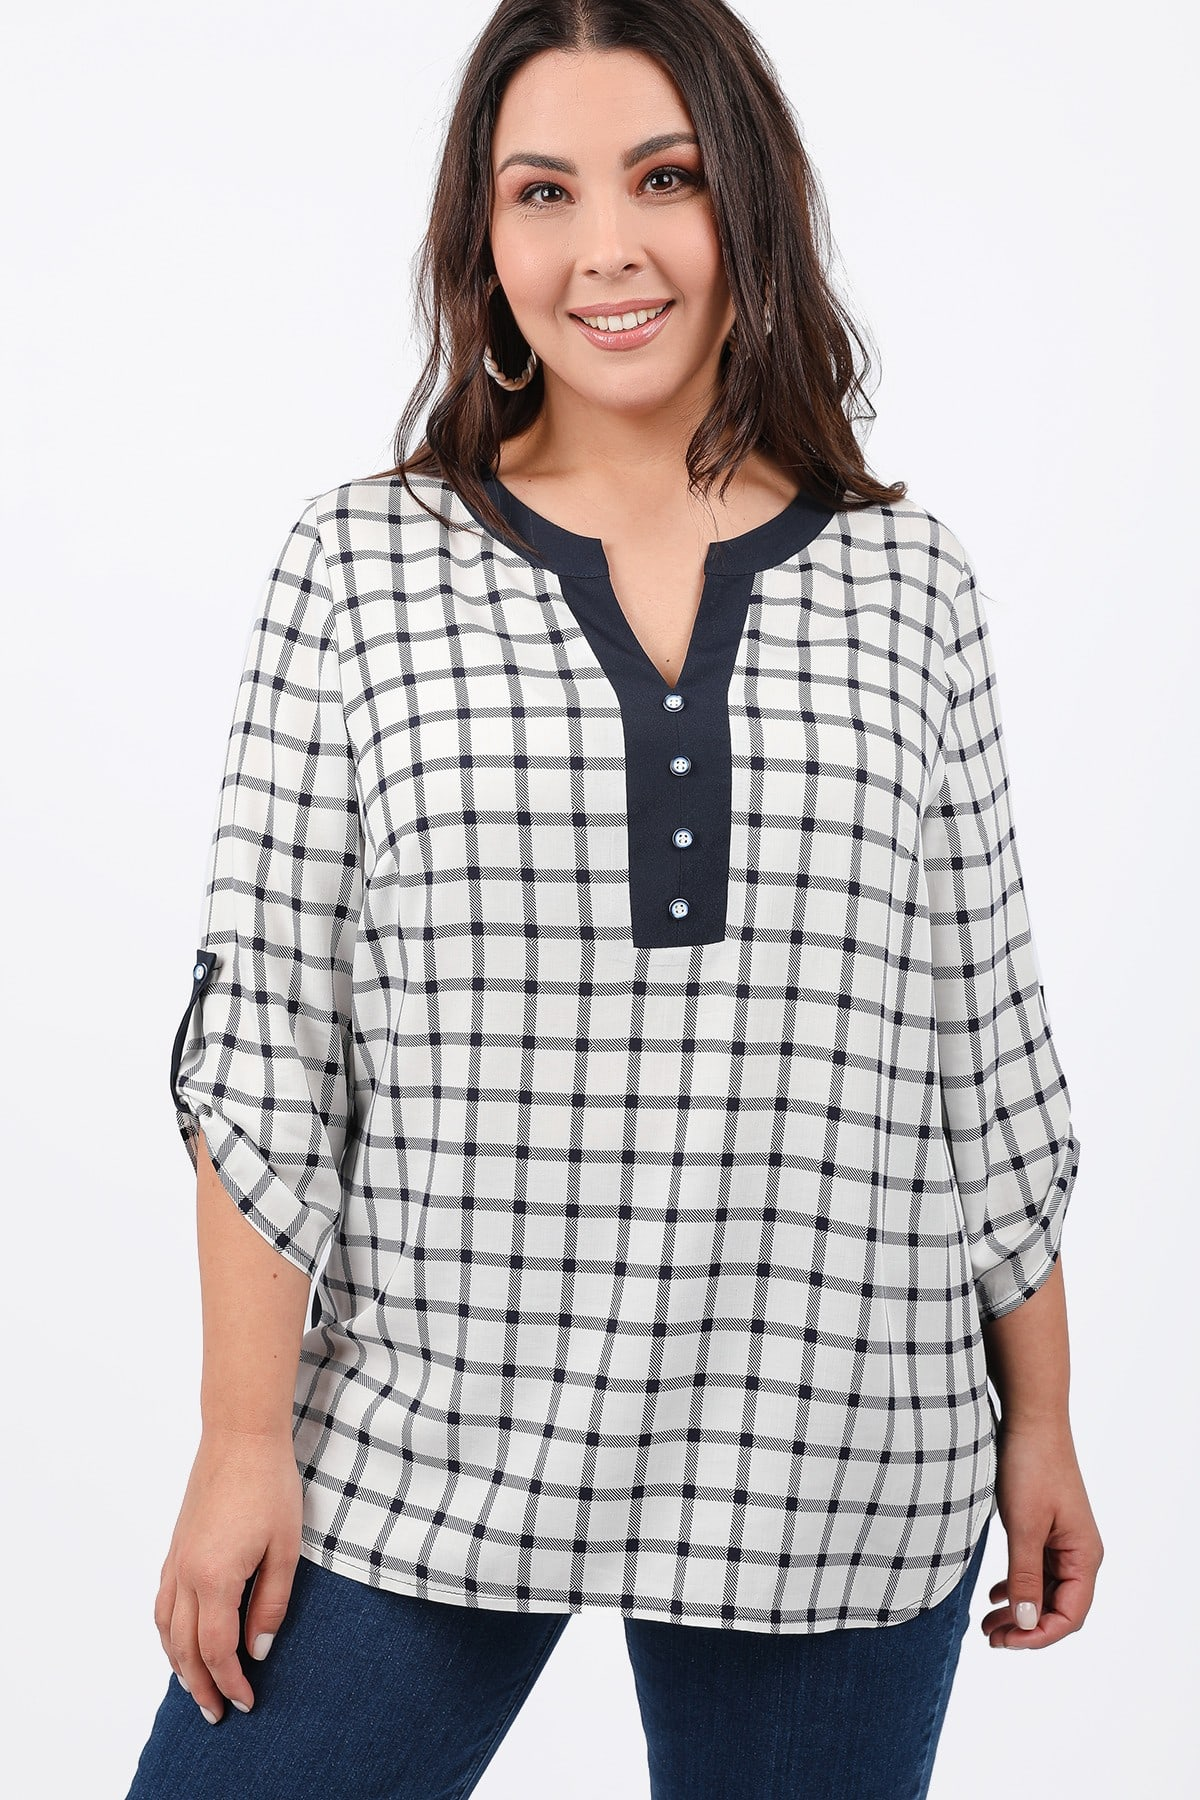 Plaid shirtblouse with buttons stripe